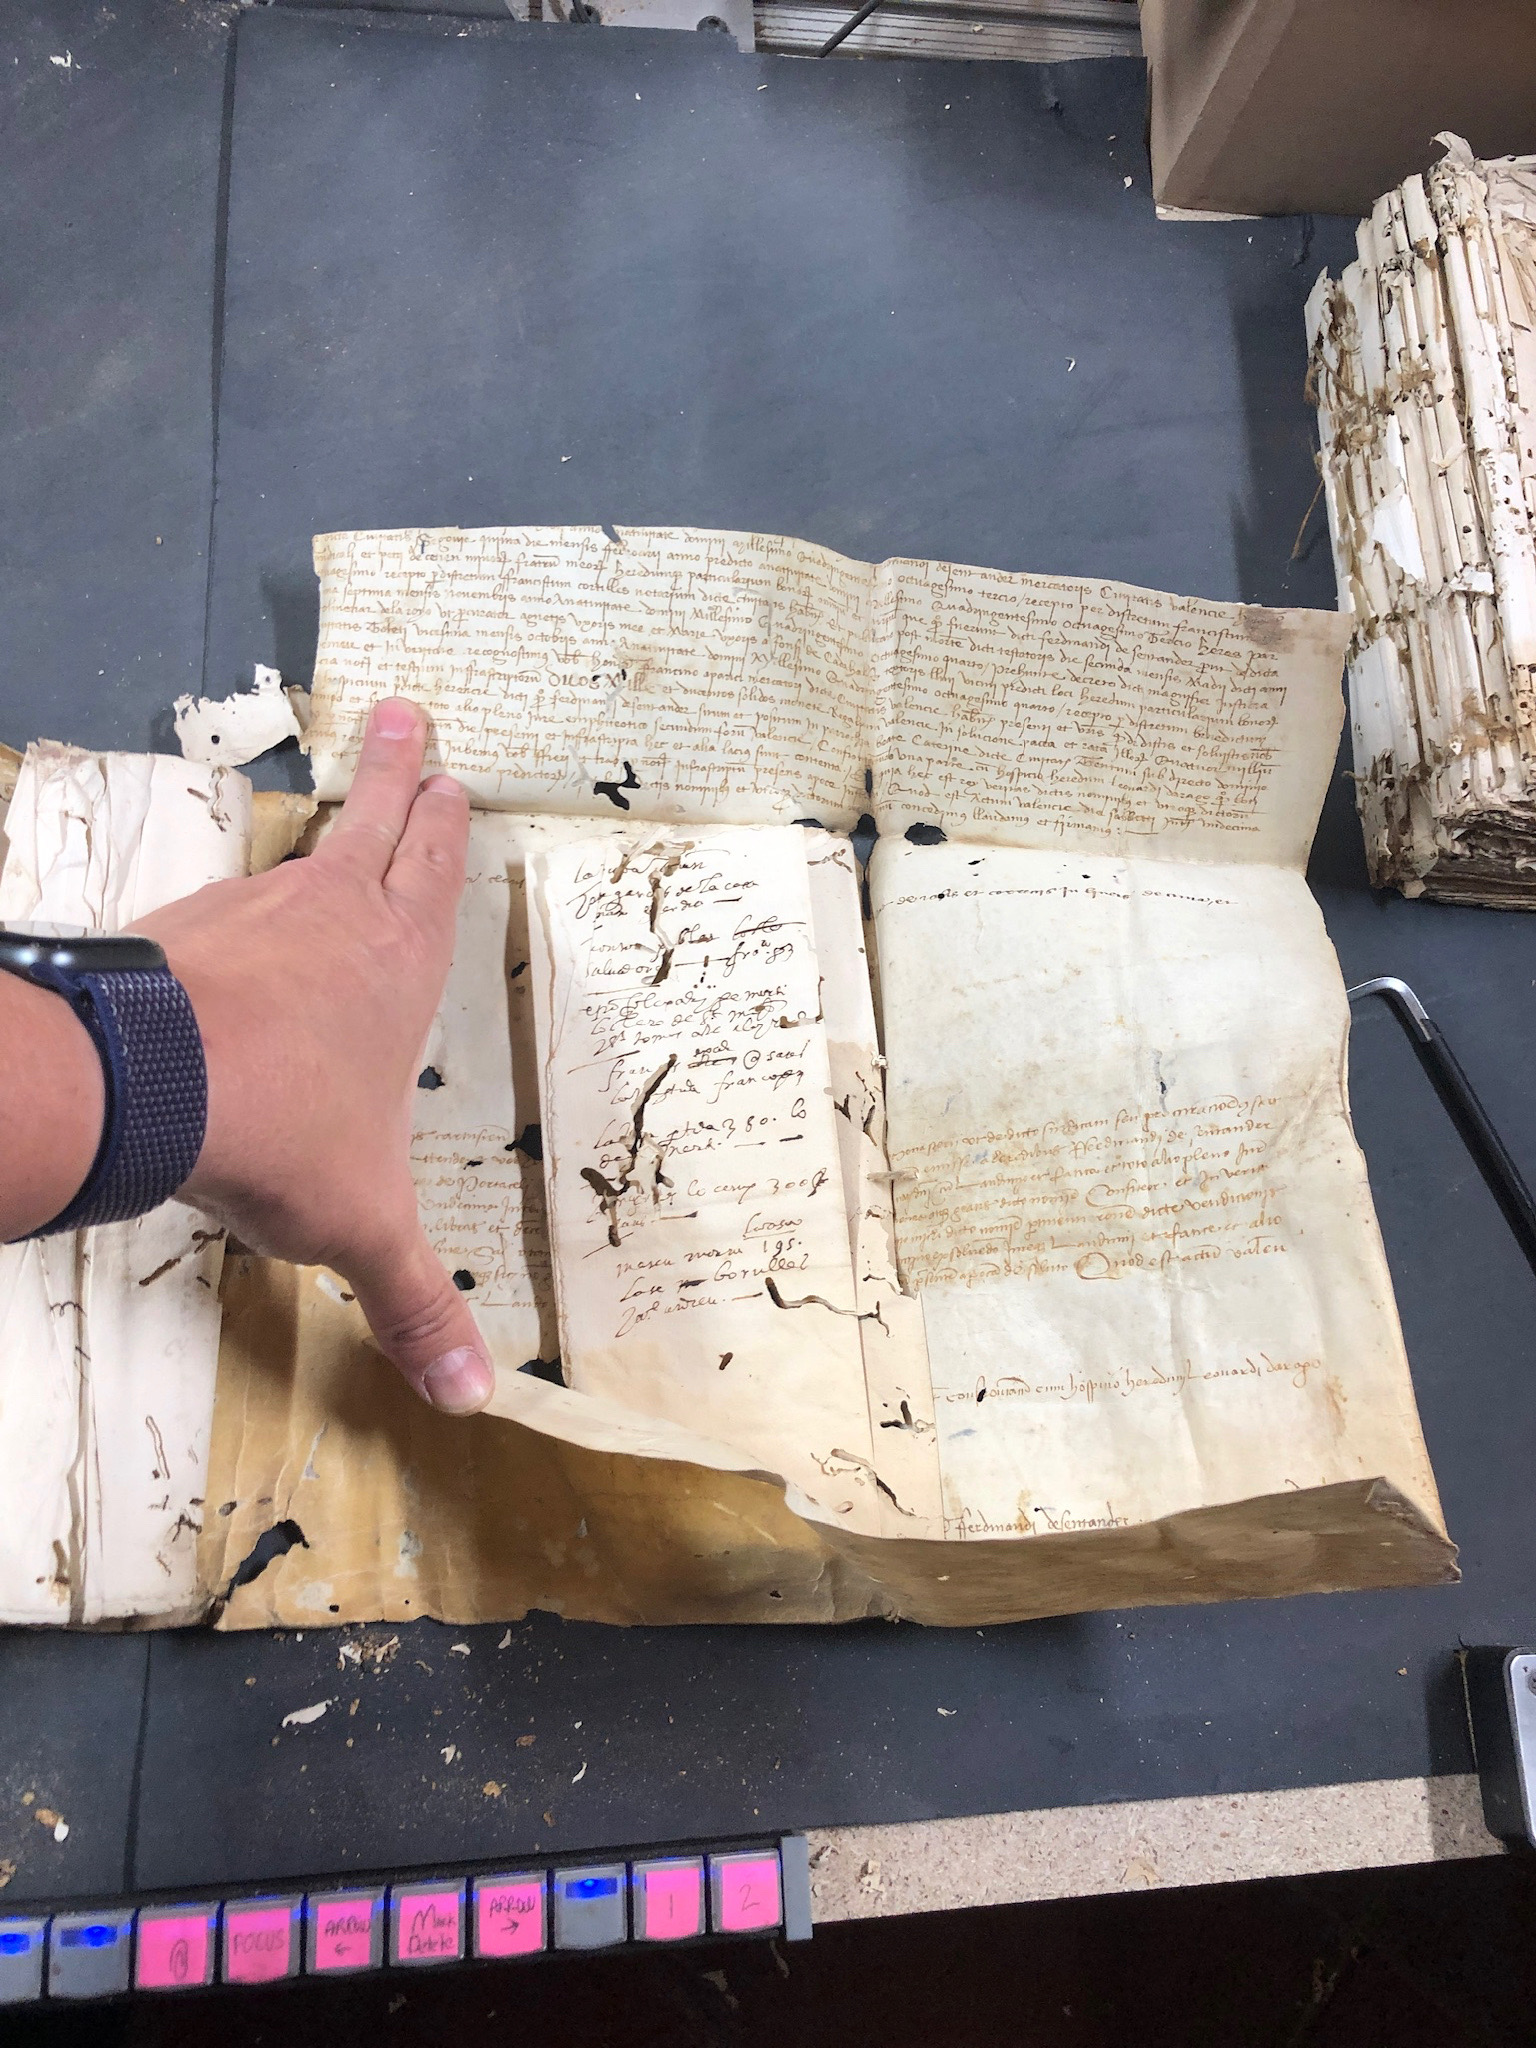 Covers that hold books together are often documents as well and are older than the actual book. Senior missionaries Sister Rife and Sister Klafke are currently serving in Spain on a records preservation mission.